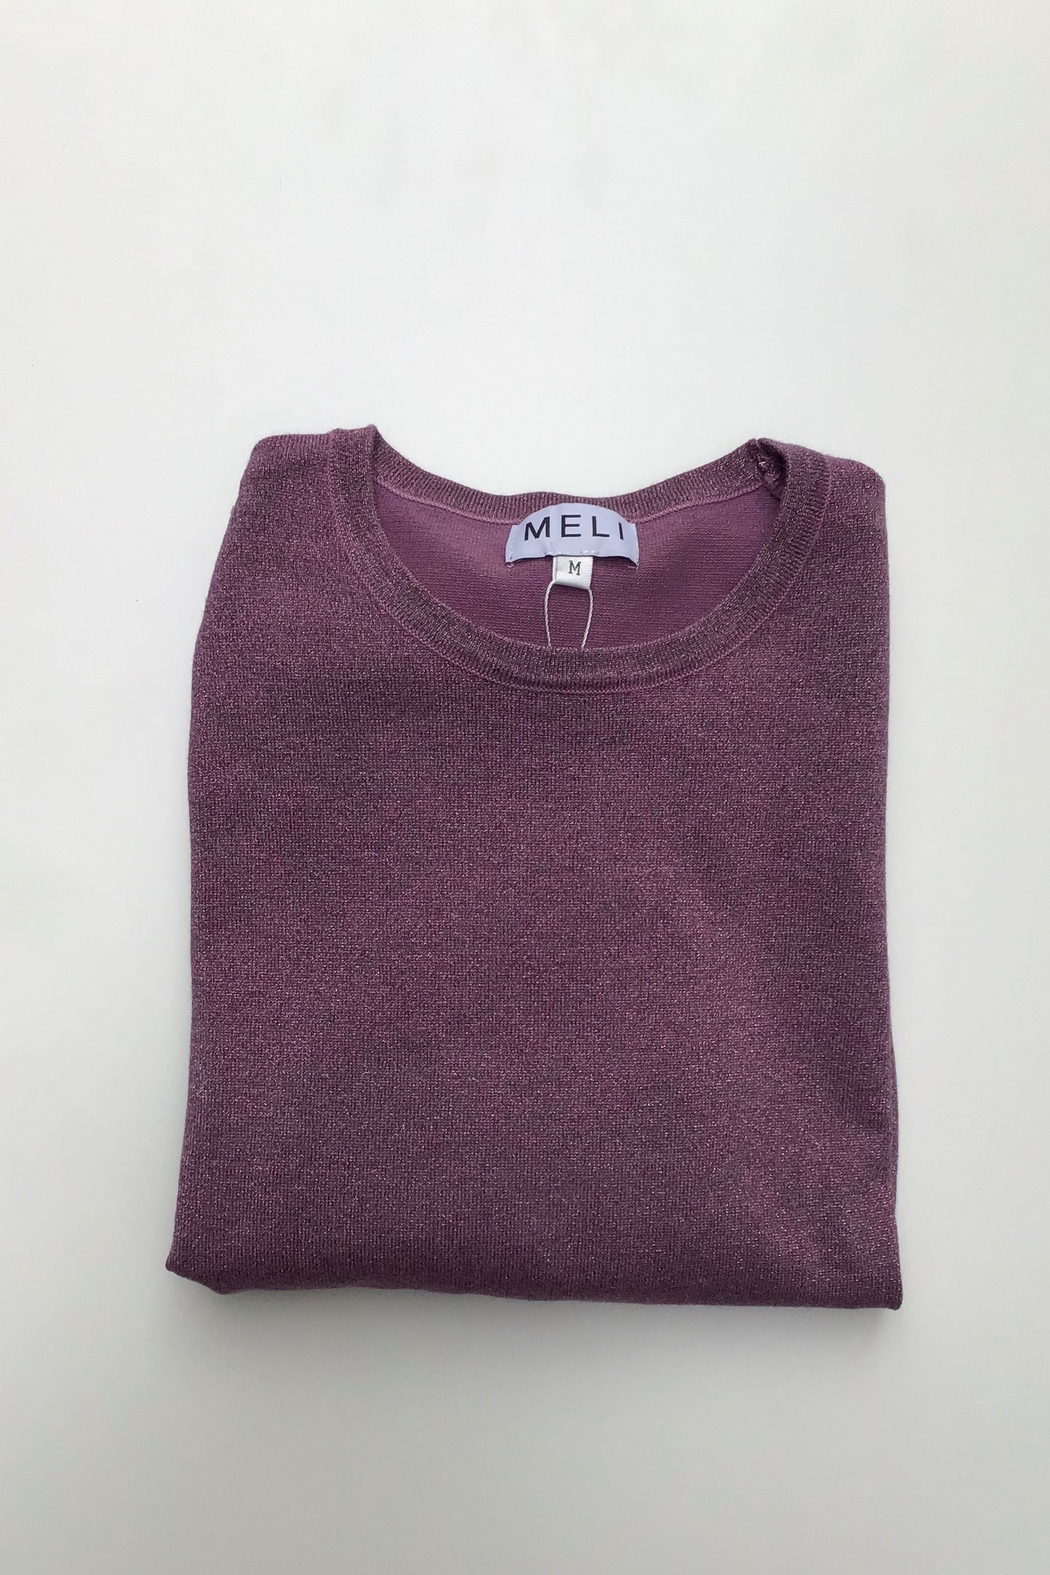 Meli by FAME LUREX CREW SWEATER LS - Front Cropped Image